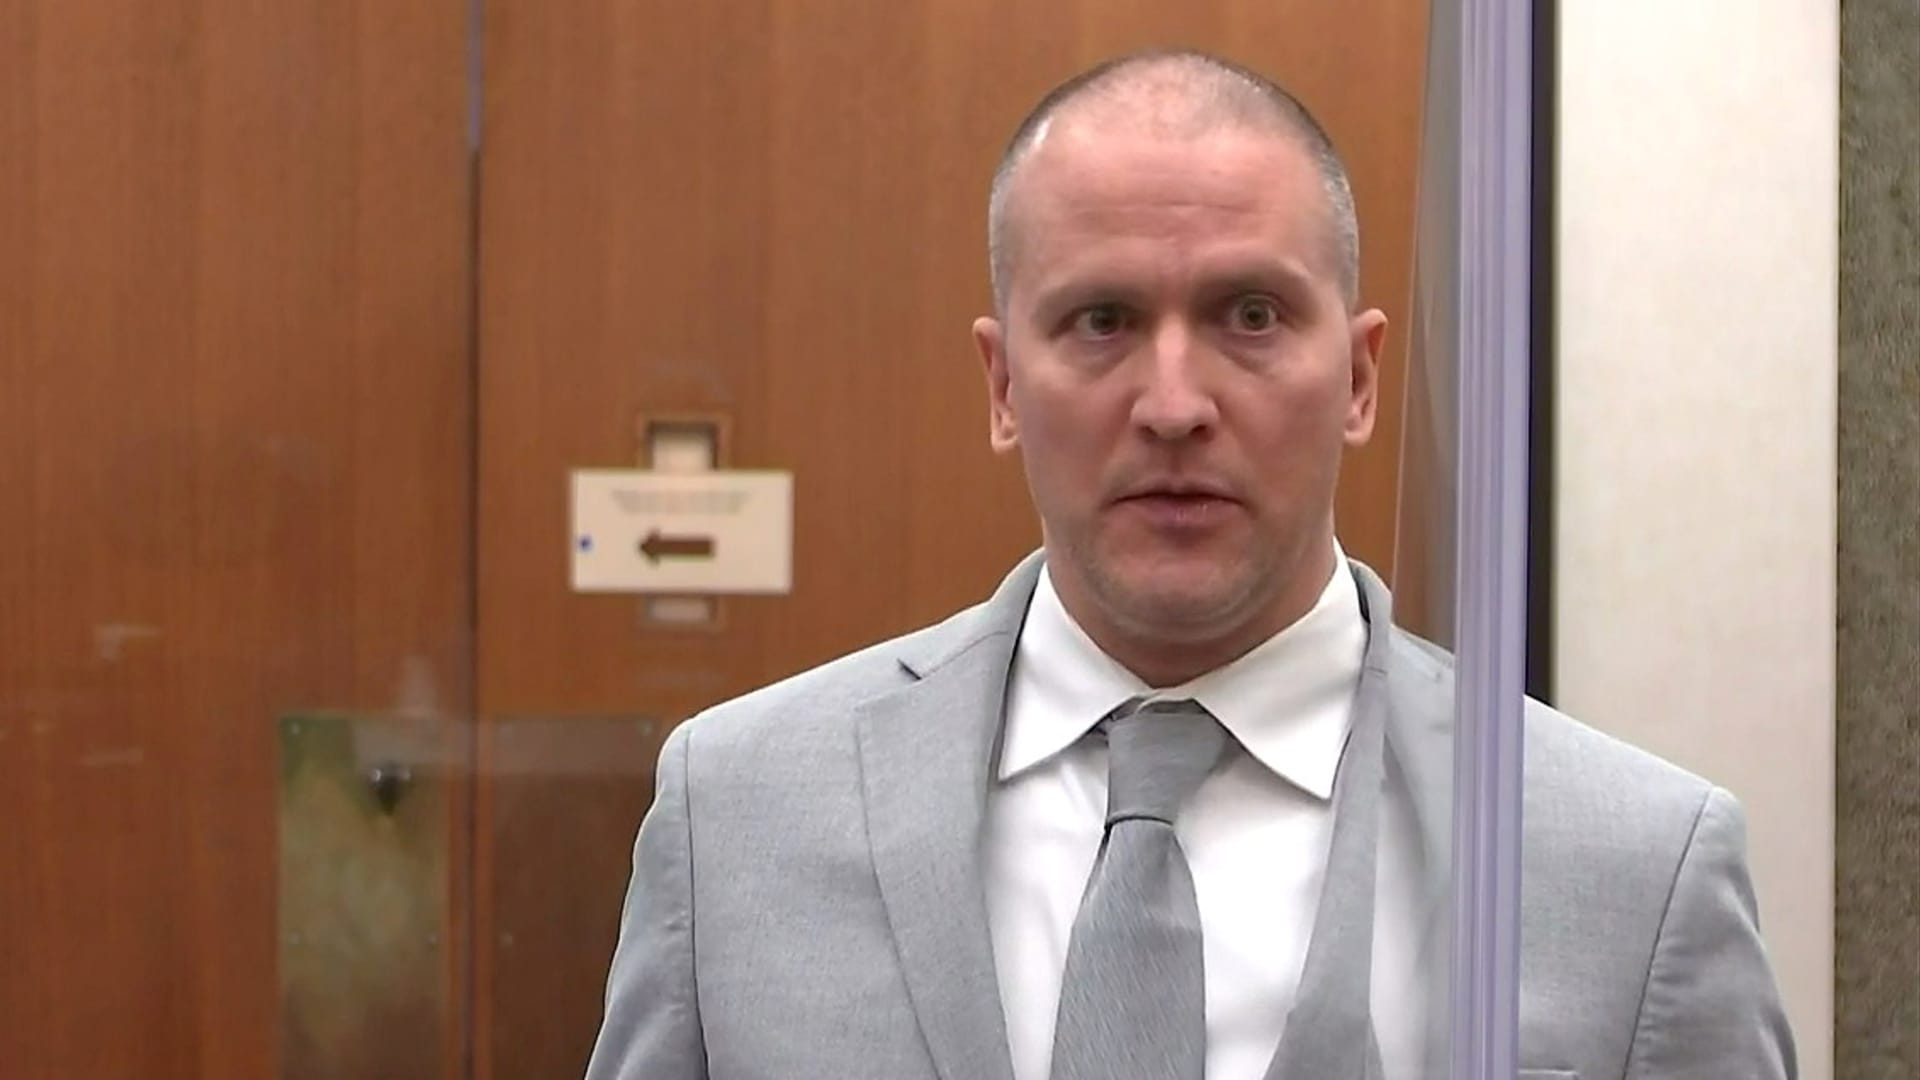 Former Minneapolis police officer Derek Chauvin addresses his sentencing hearing and the judge as he awaits his sentence after being convicted of murder in the death of Floyd in Minneapolis, Minnesota, U.S. June 25, 2021 in a still image from video.